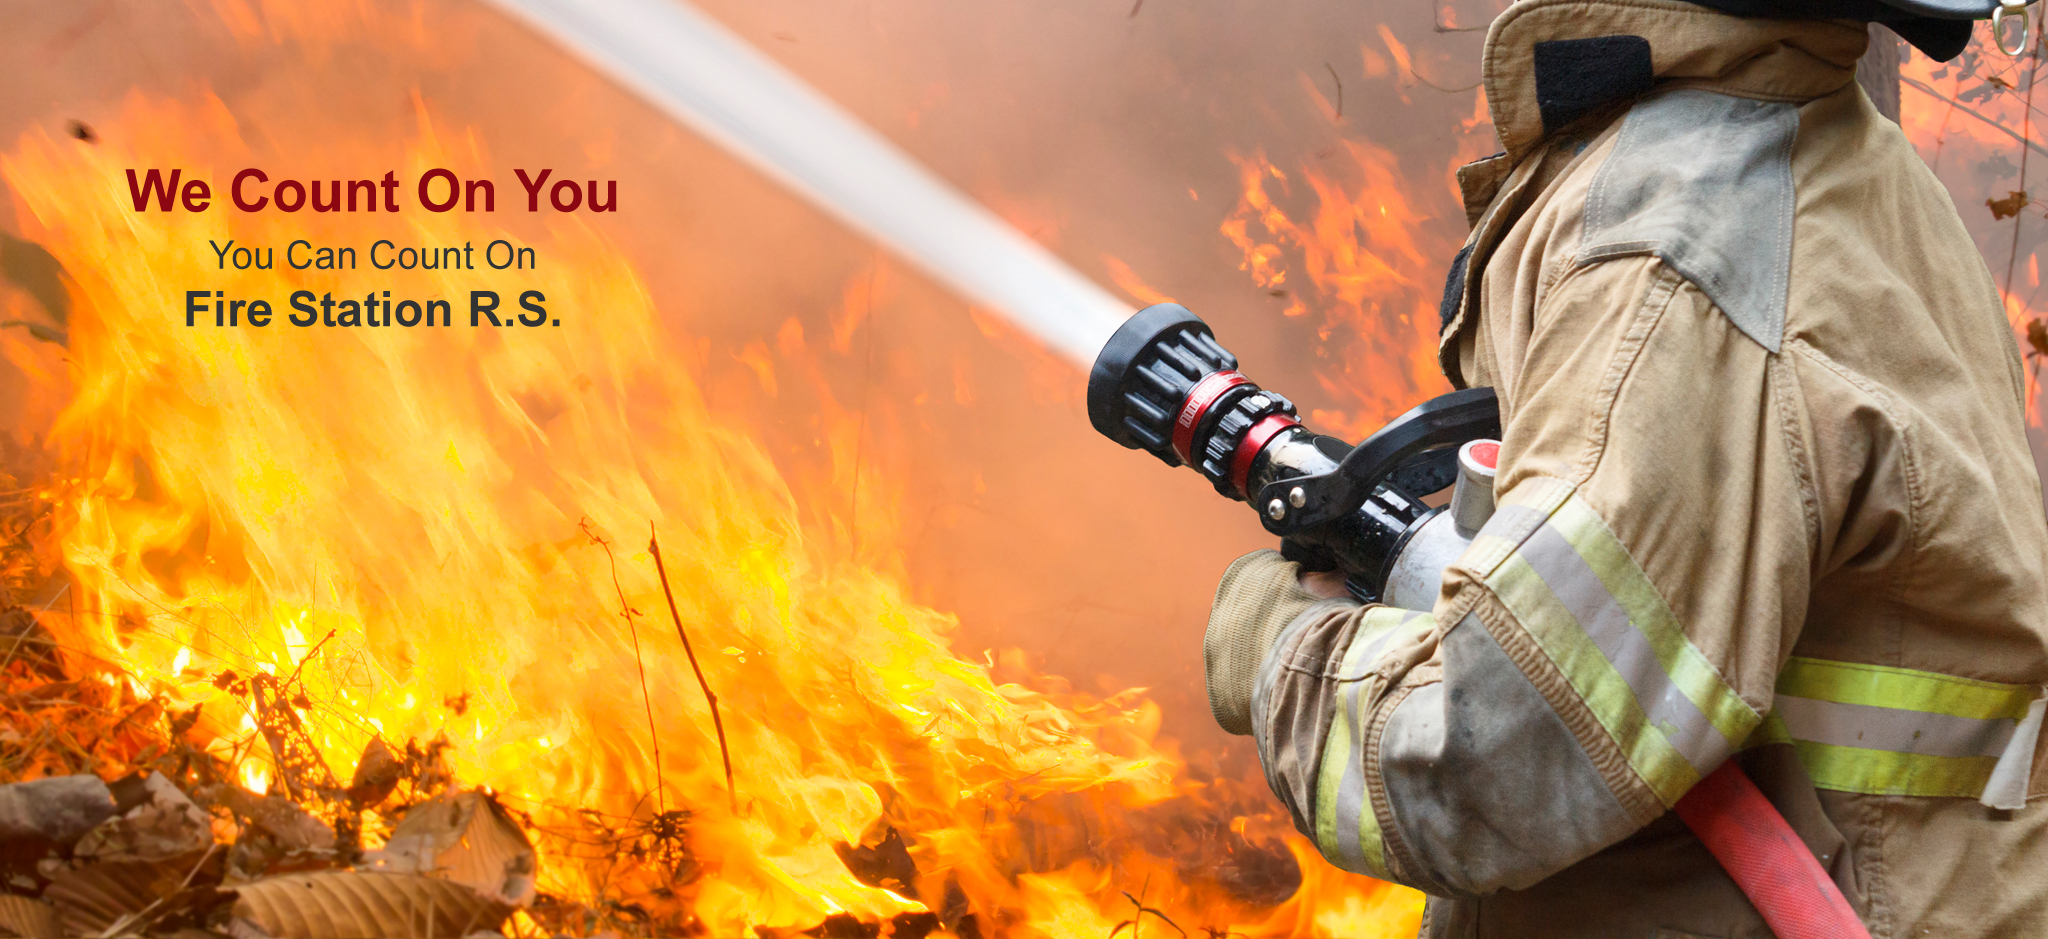 We count on you. You can count on Fire Station R.S.